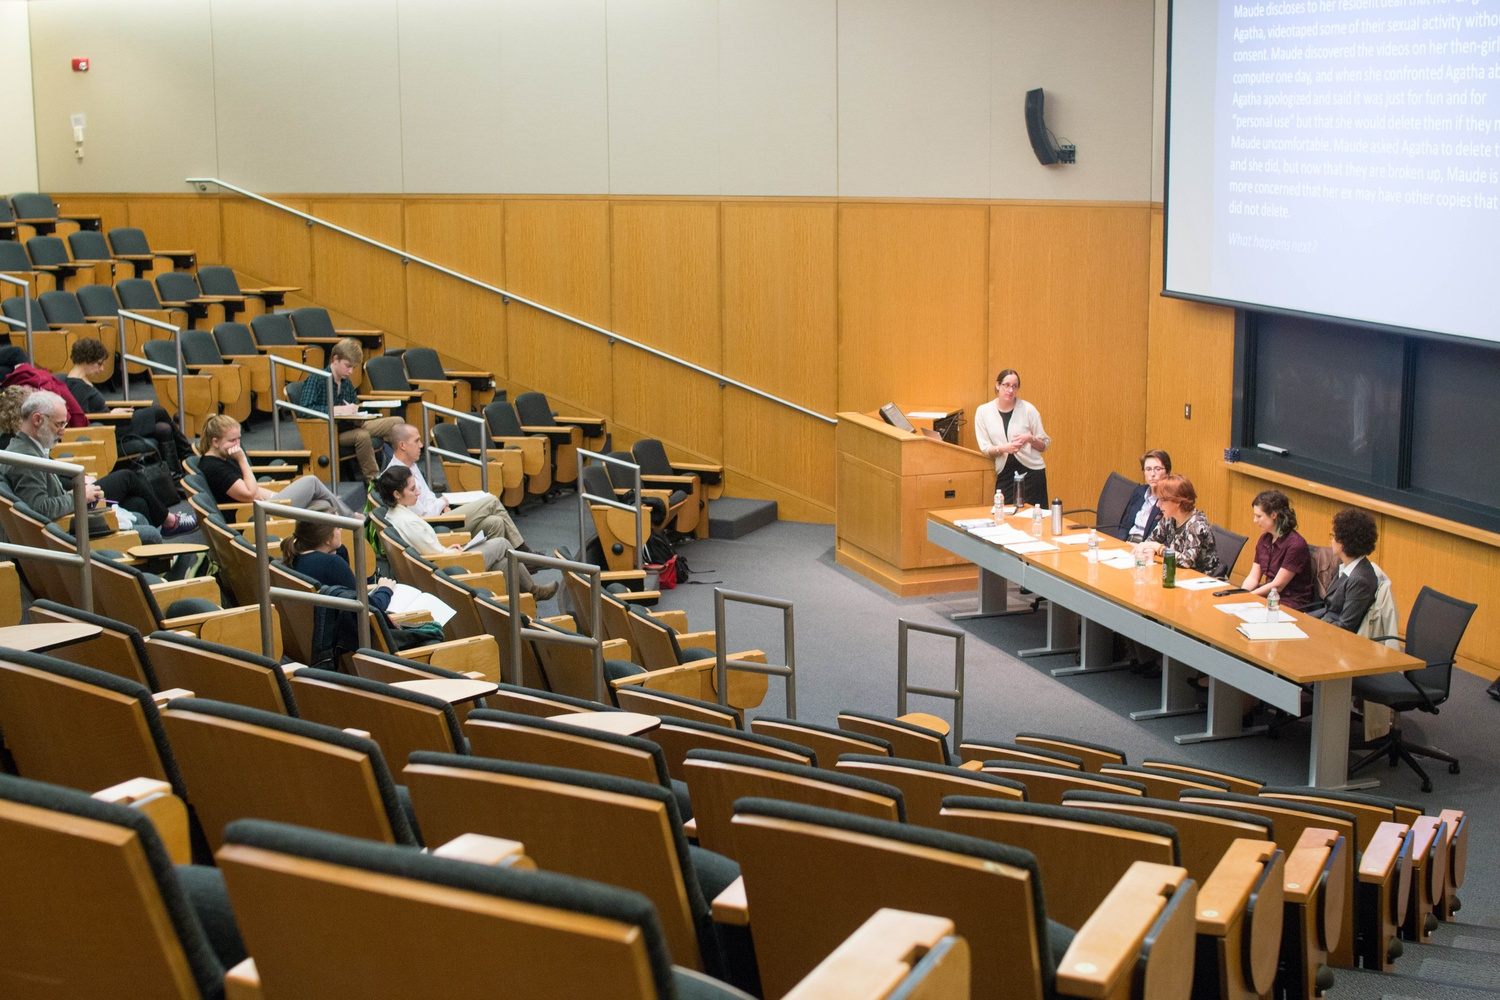 Roughly a dozen people attended an informational panel about the Office of Sexual Assault Prevention and Response, Title IX, the Office of Dispute Resolution, and the Administrative Board in Tsai Auditorium on Tuesday evening.